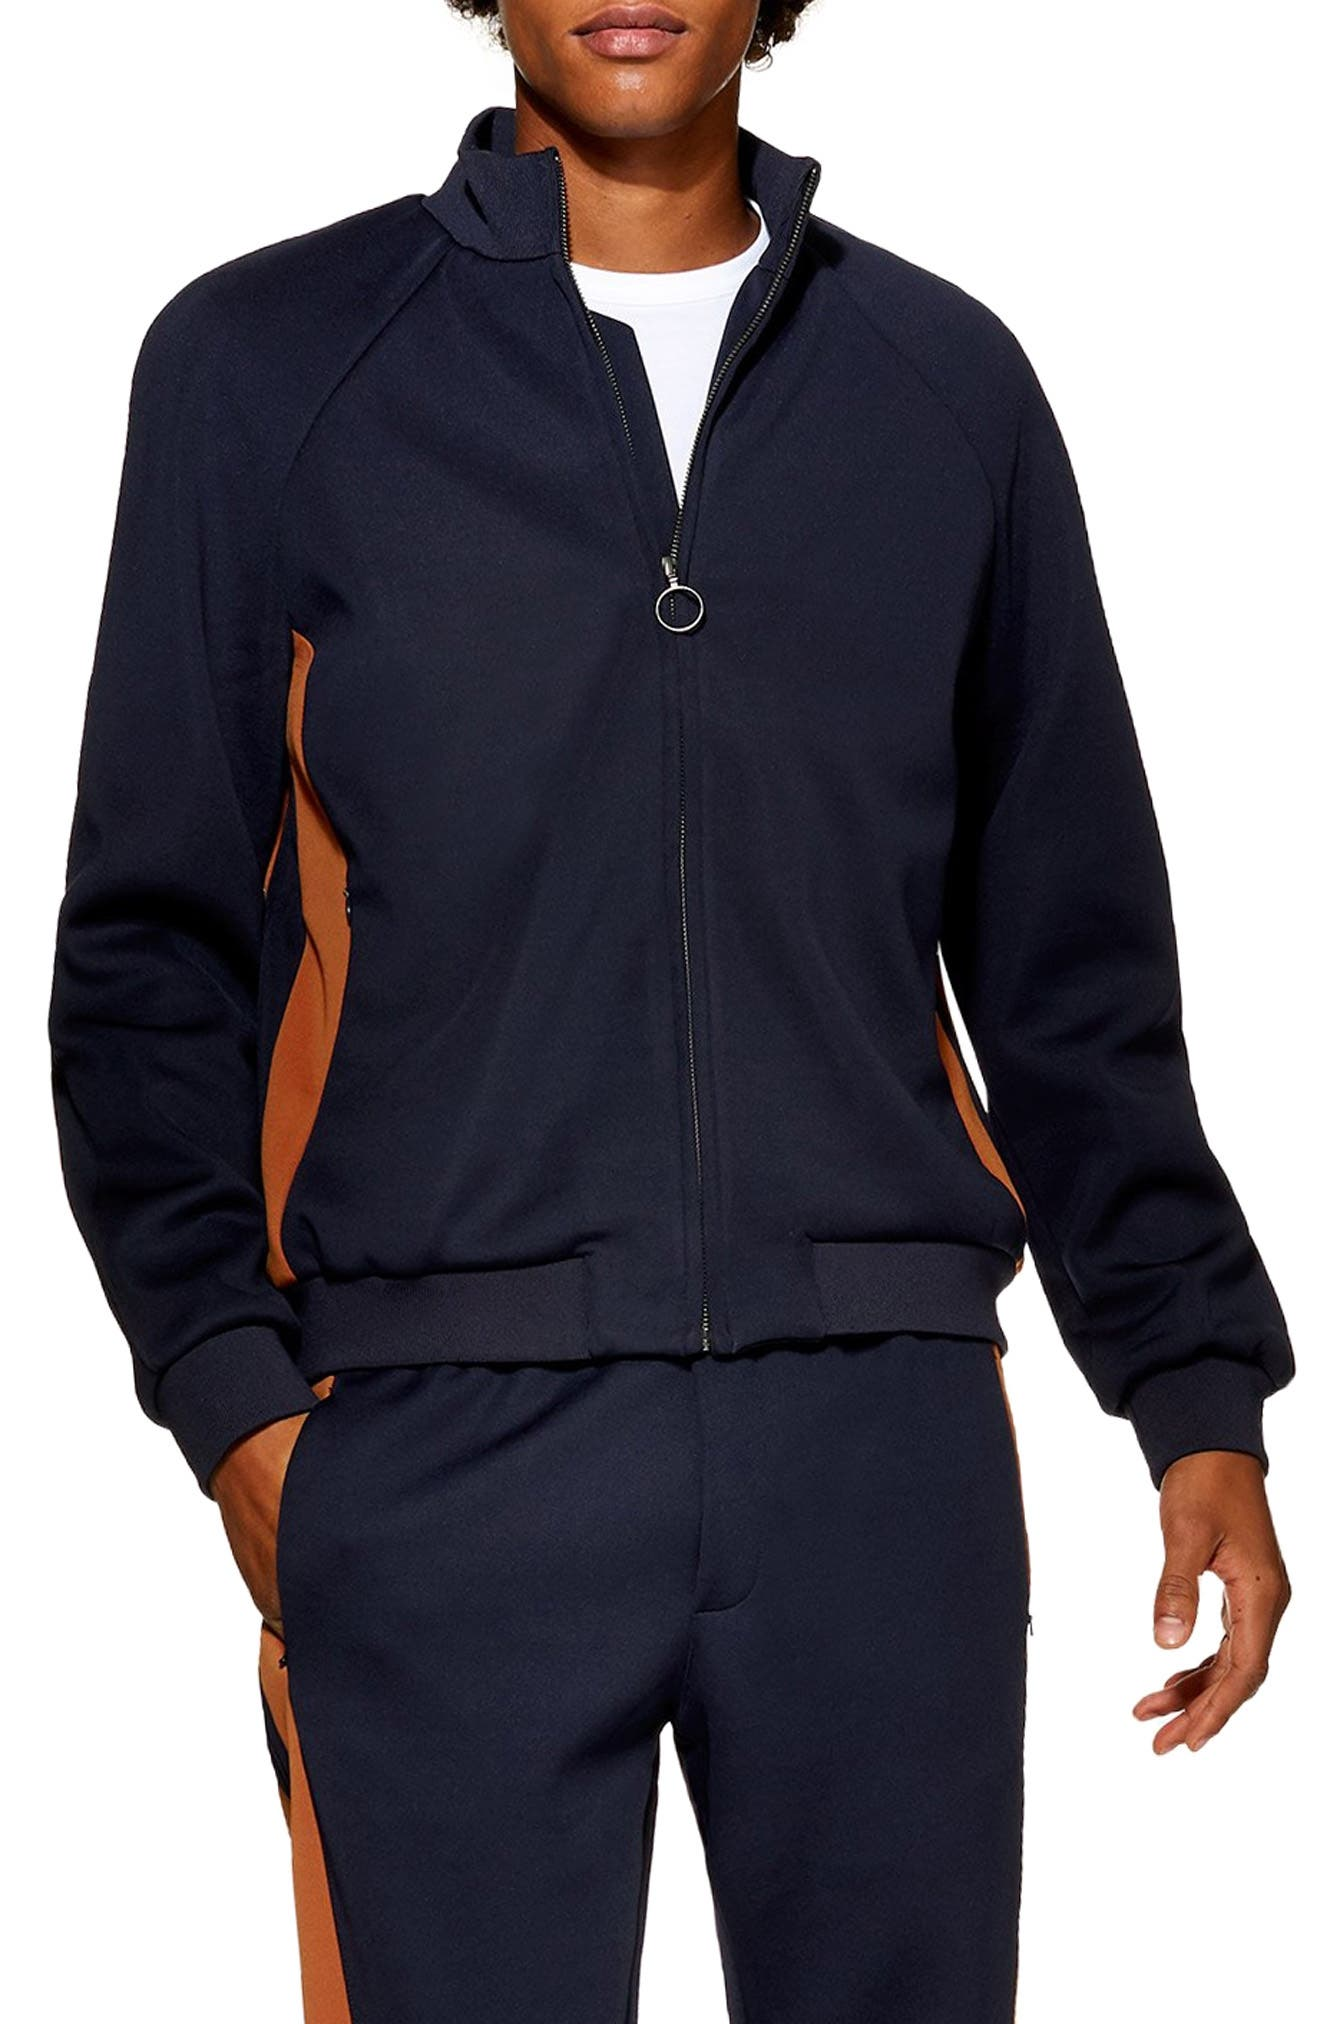 Domino Revere Zip Jacket,                         Main,                         color, NAVY BLUE